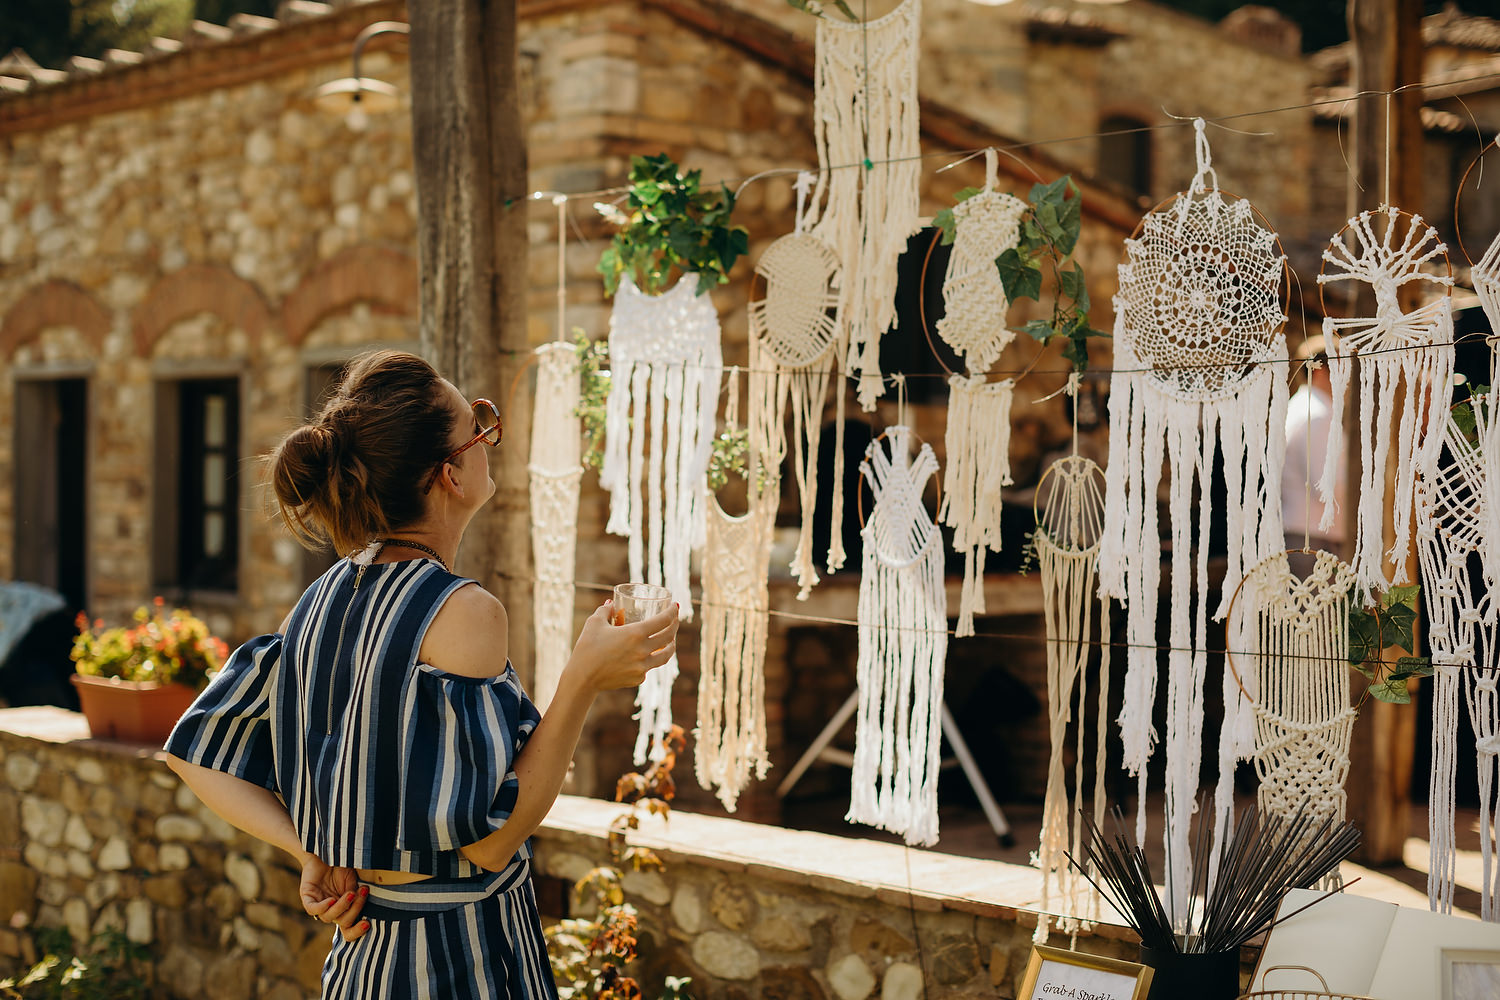 Handmade Macramé for wedding